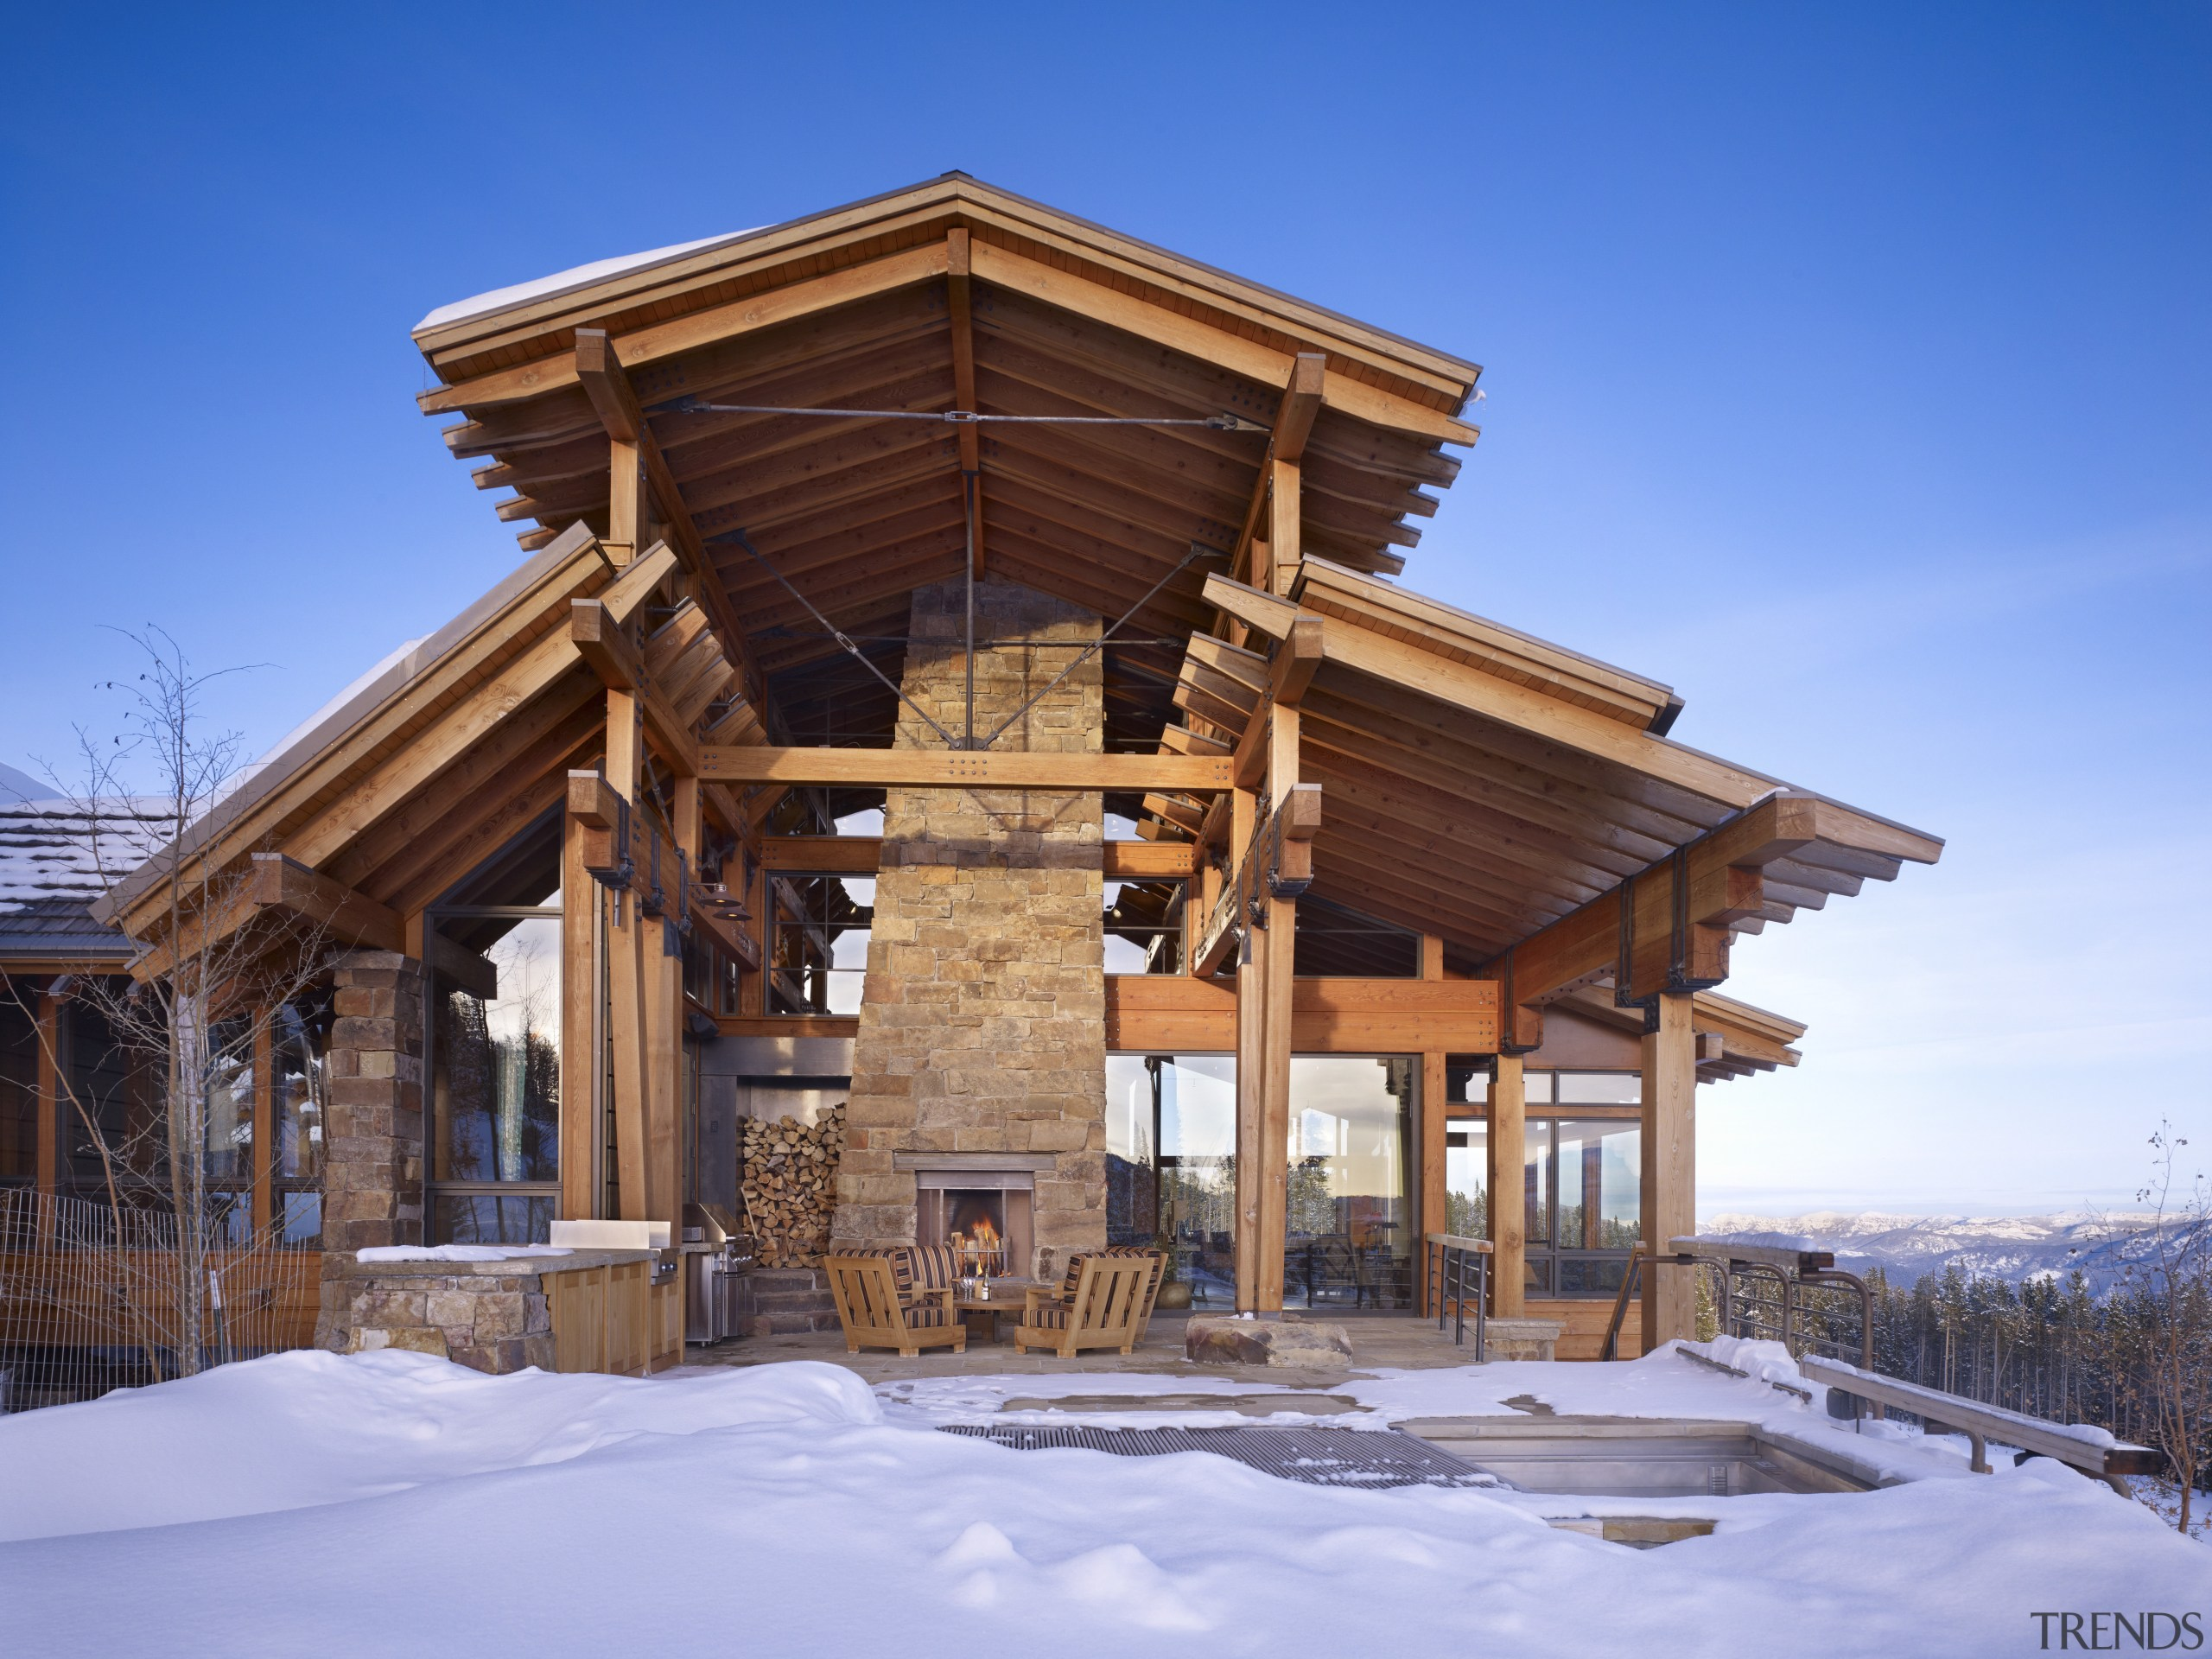 An exoskeleton of chunky wood beams and extended cottage, home, house, hut, log cabin, outdoor structure, property, real estate, roof, shed, siding, snow, winter, wood, teal